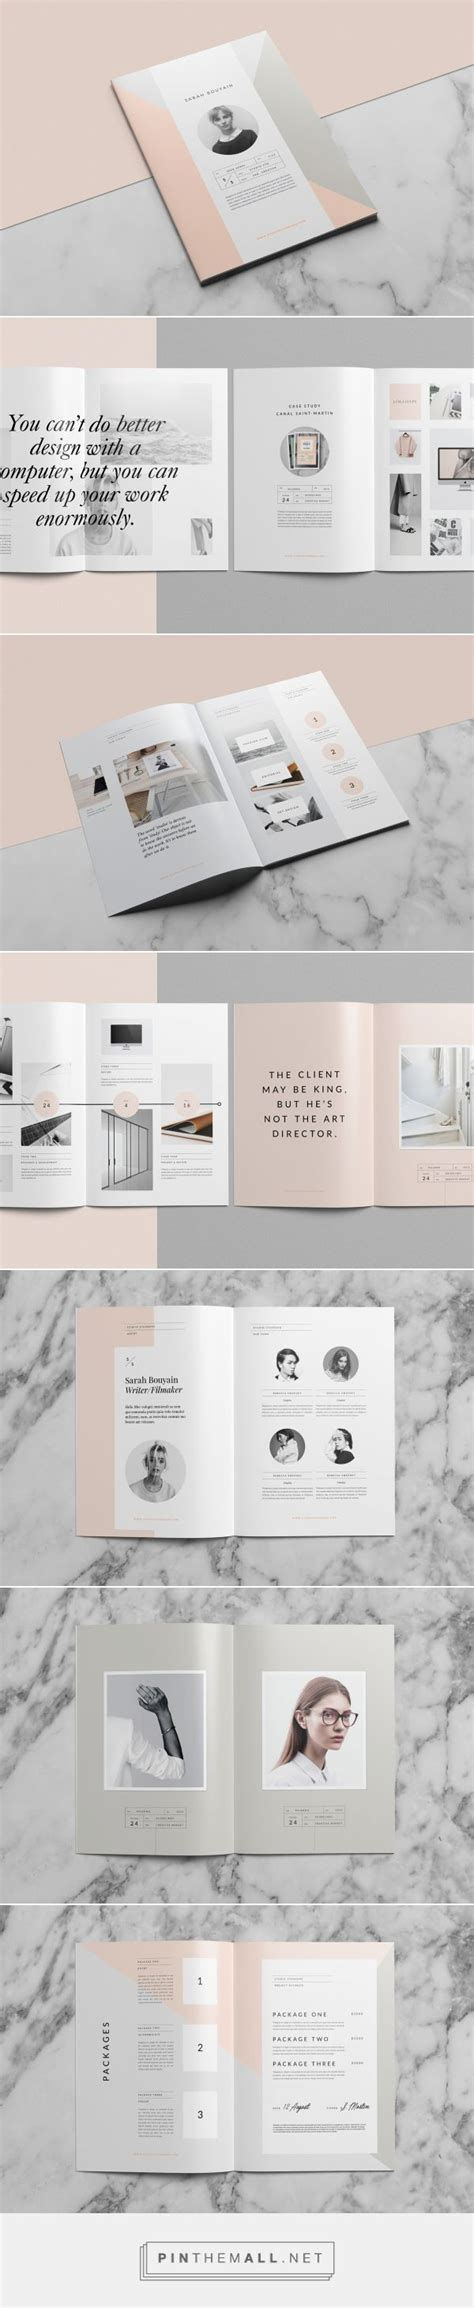 layout design on behance design book ebook interior or layout proposals behance